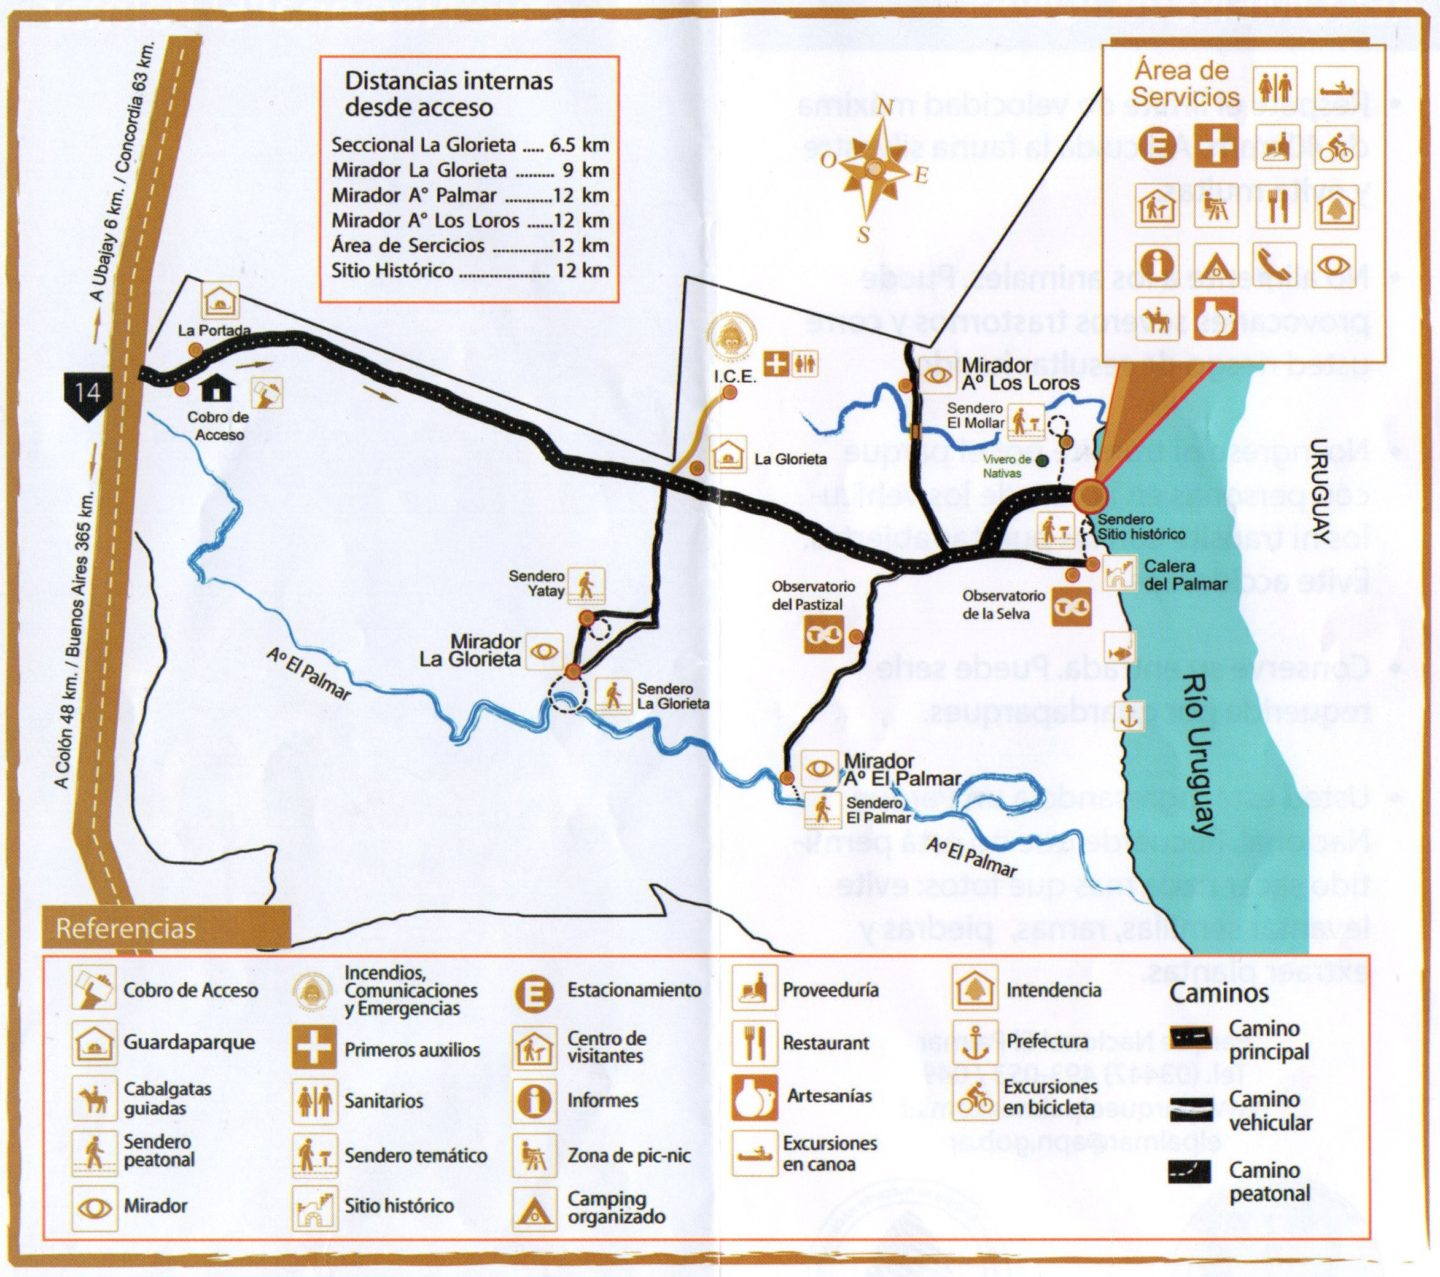 El Palmar National Park official map with trails